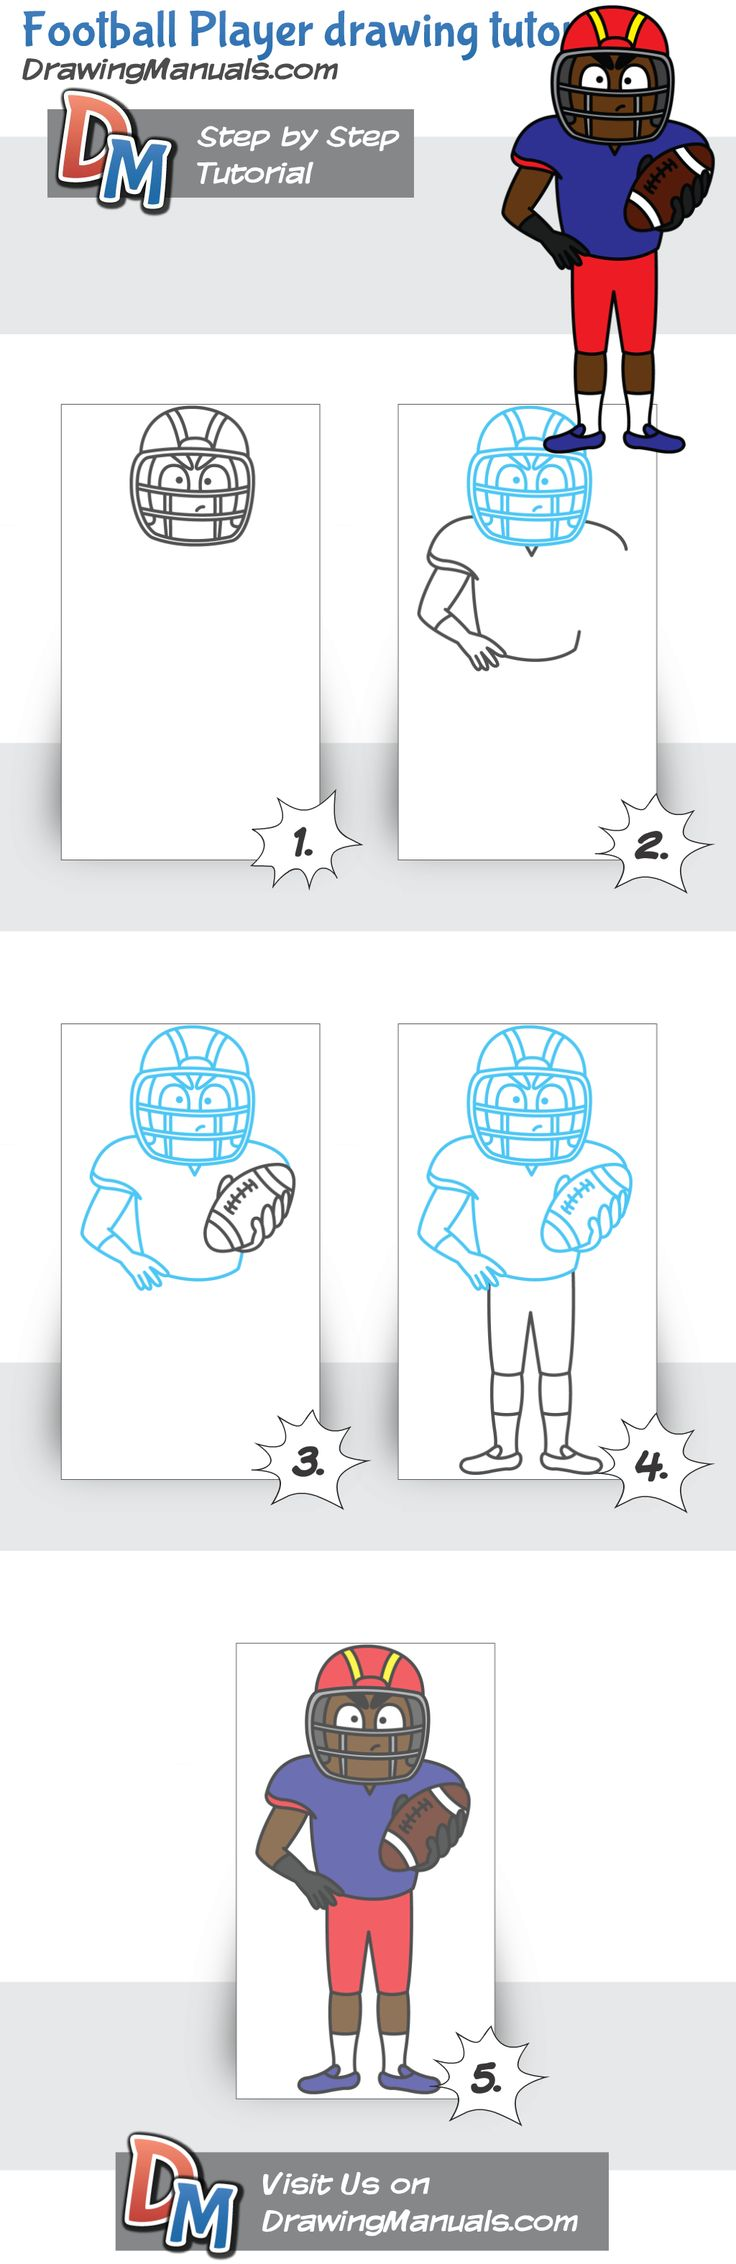 In the spirit of Super Bowl weekend... A drawing tutorial for a Football Player! http://drawingmanuals.com/manual/football-player-drawing-tutorial/